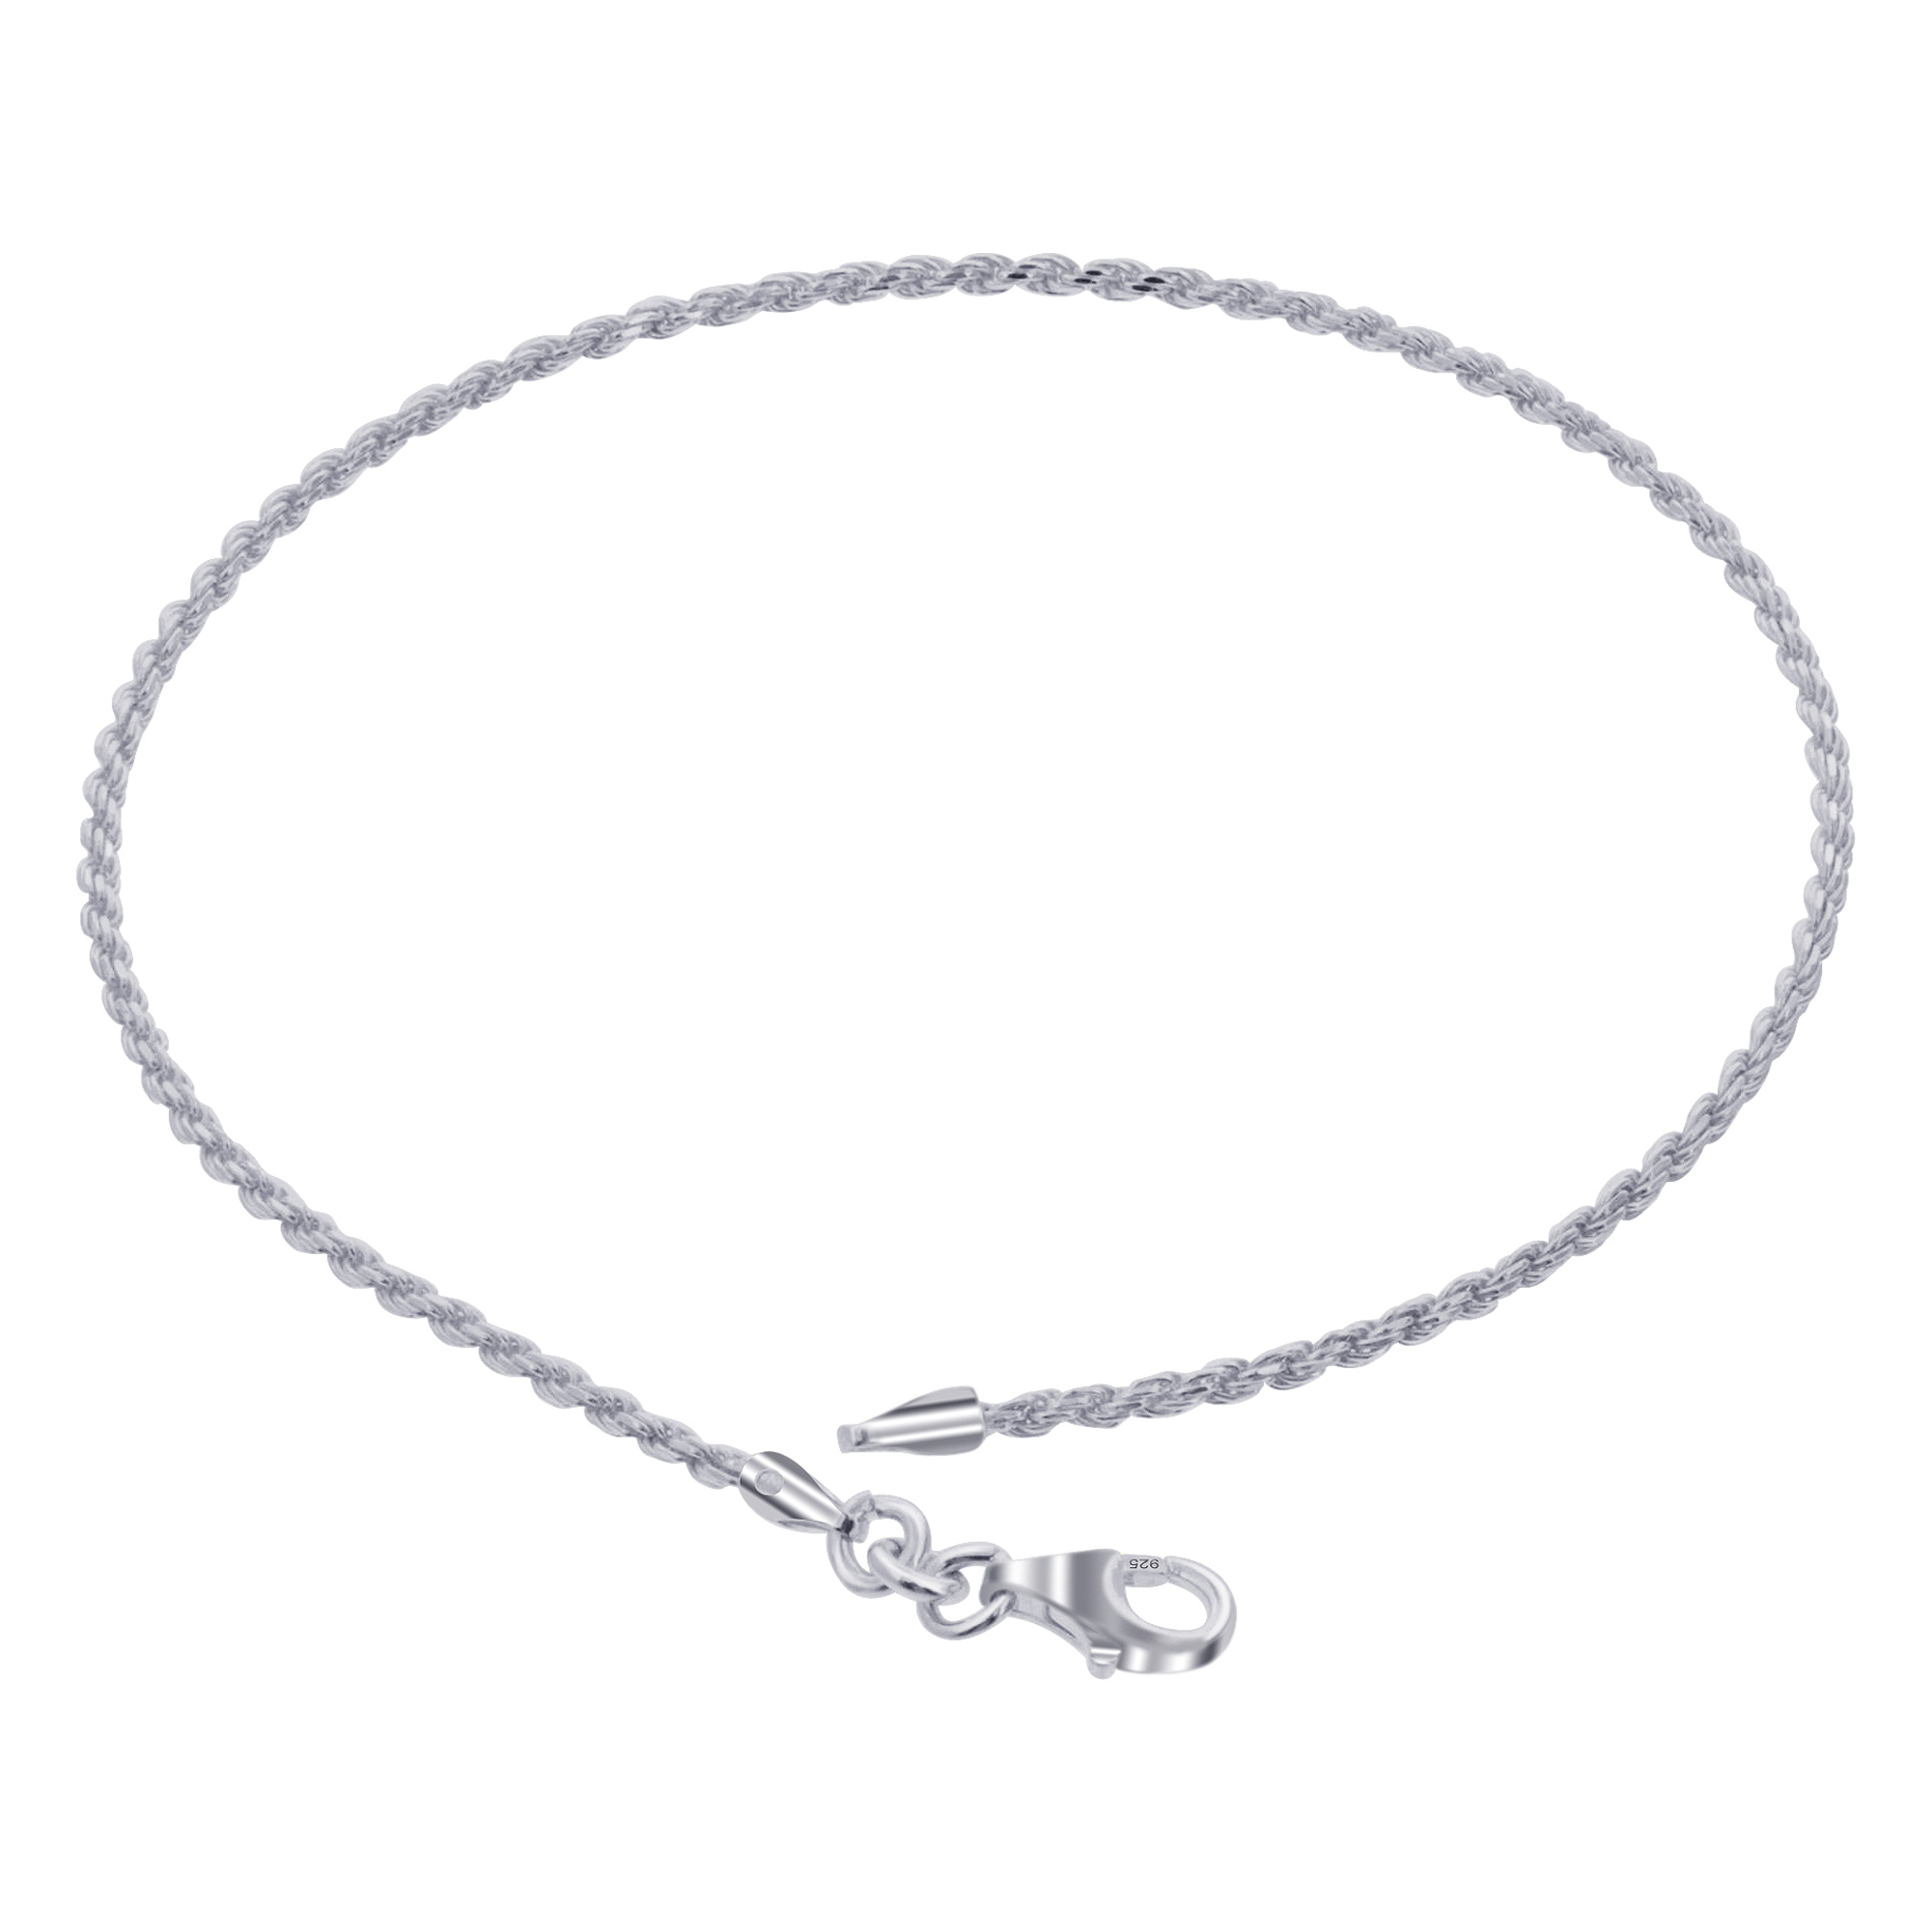 925 Sterling Silver Rope Chain Anklet Ankle Bracelet with Lobster Clasp #bda014